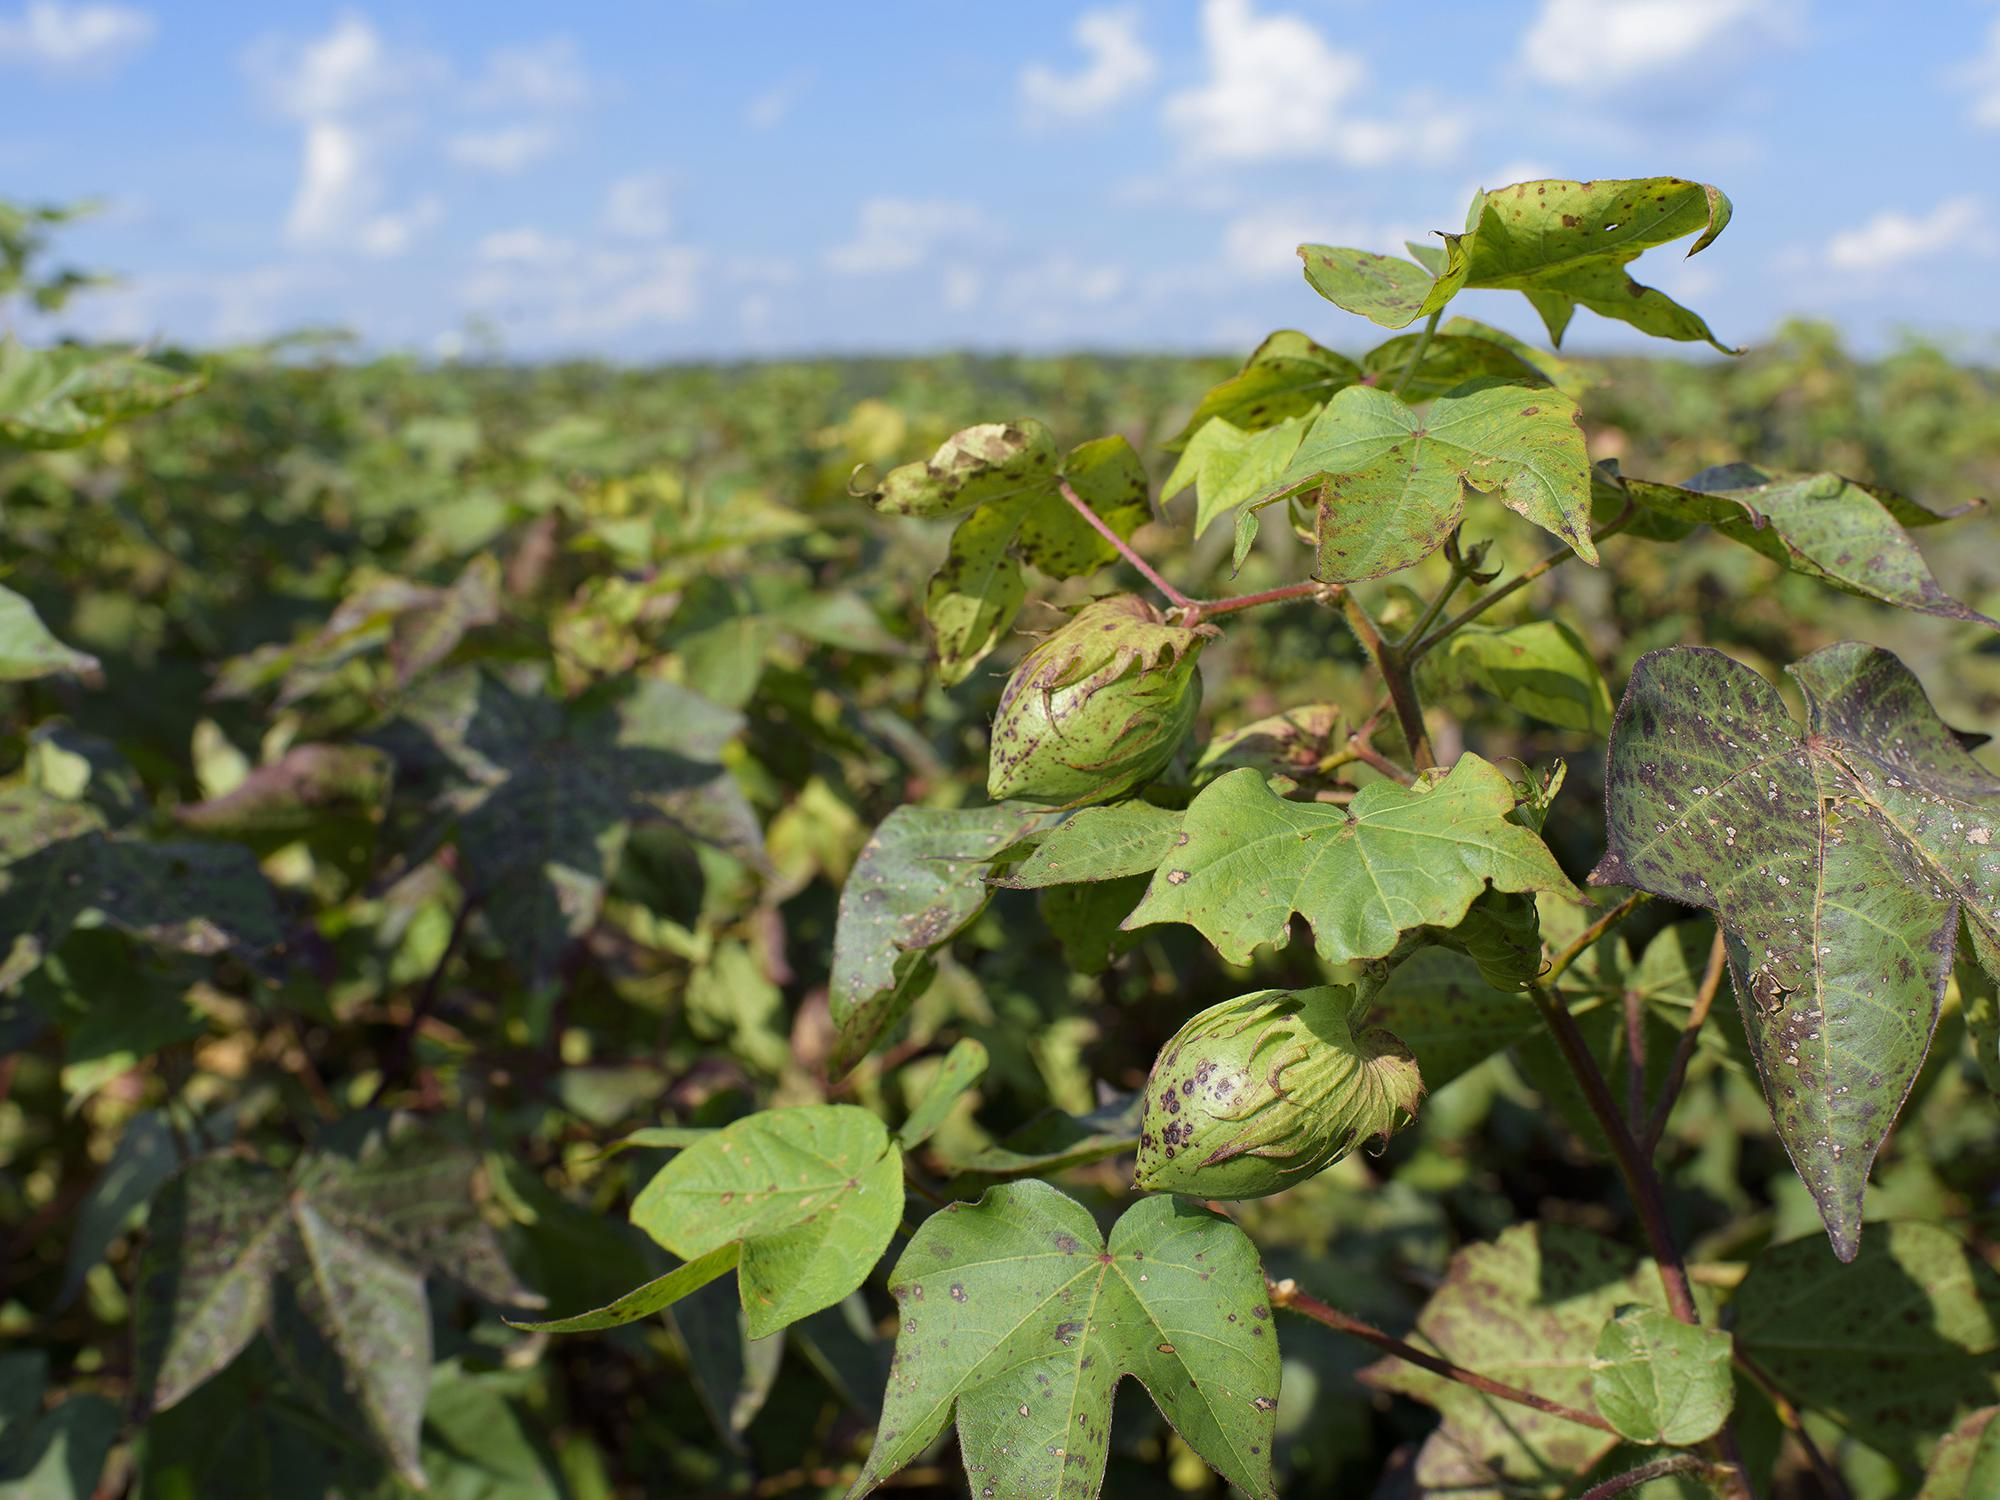 A closed boll is seen on a cotton plant growing in a field.